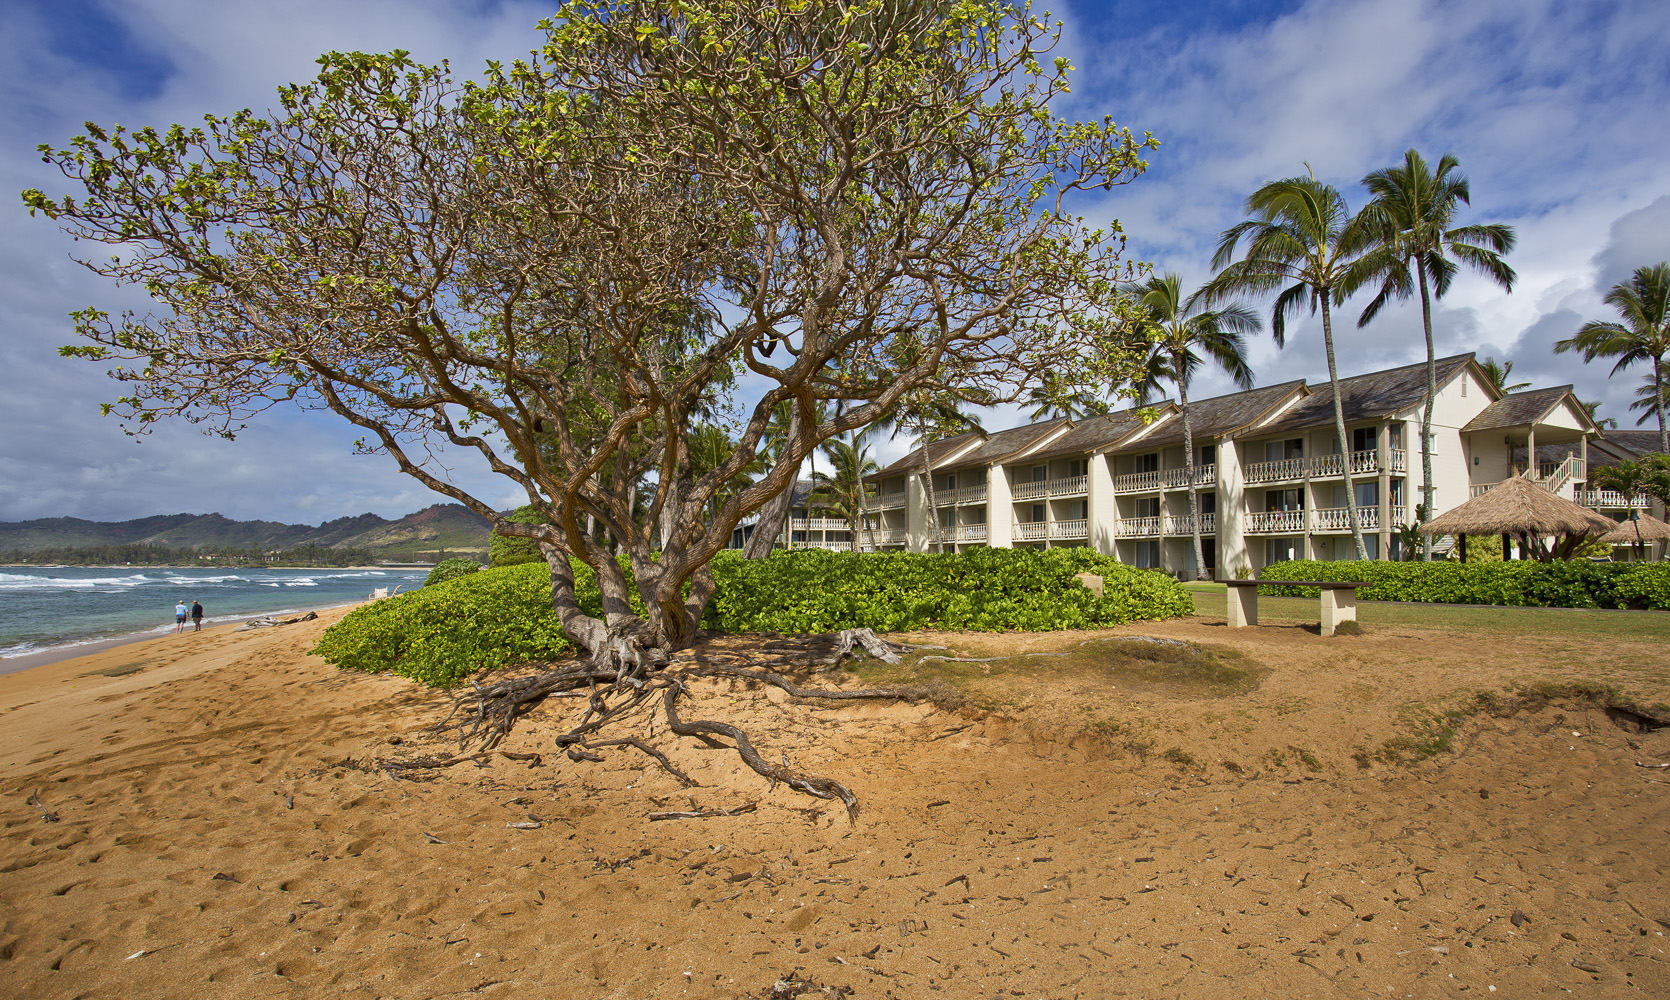 Condominio por un Venta en Islander on the Beach 440 ALEKA PL, #112 Kapaa, Hawaii 96746 Estados Unidos